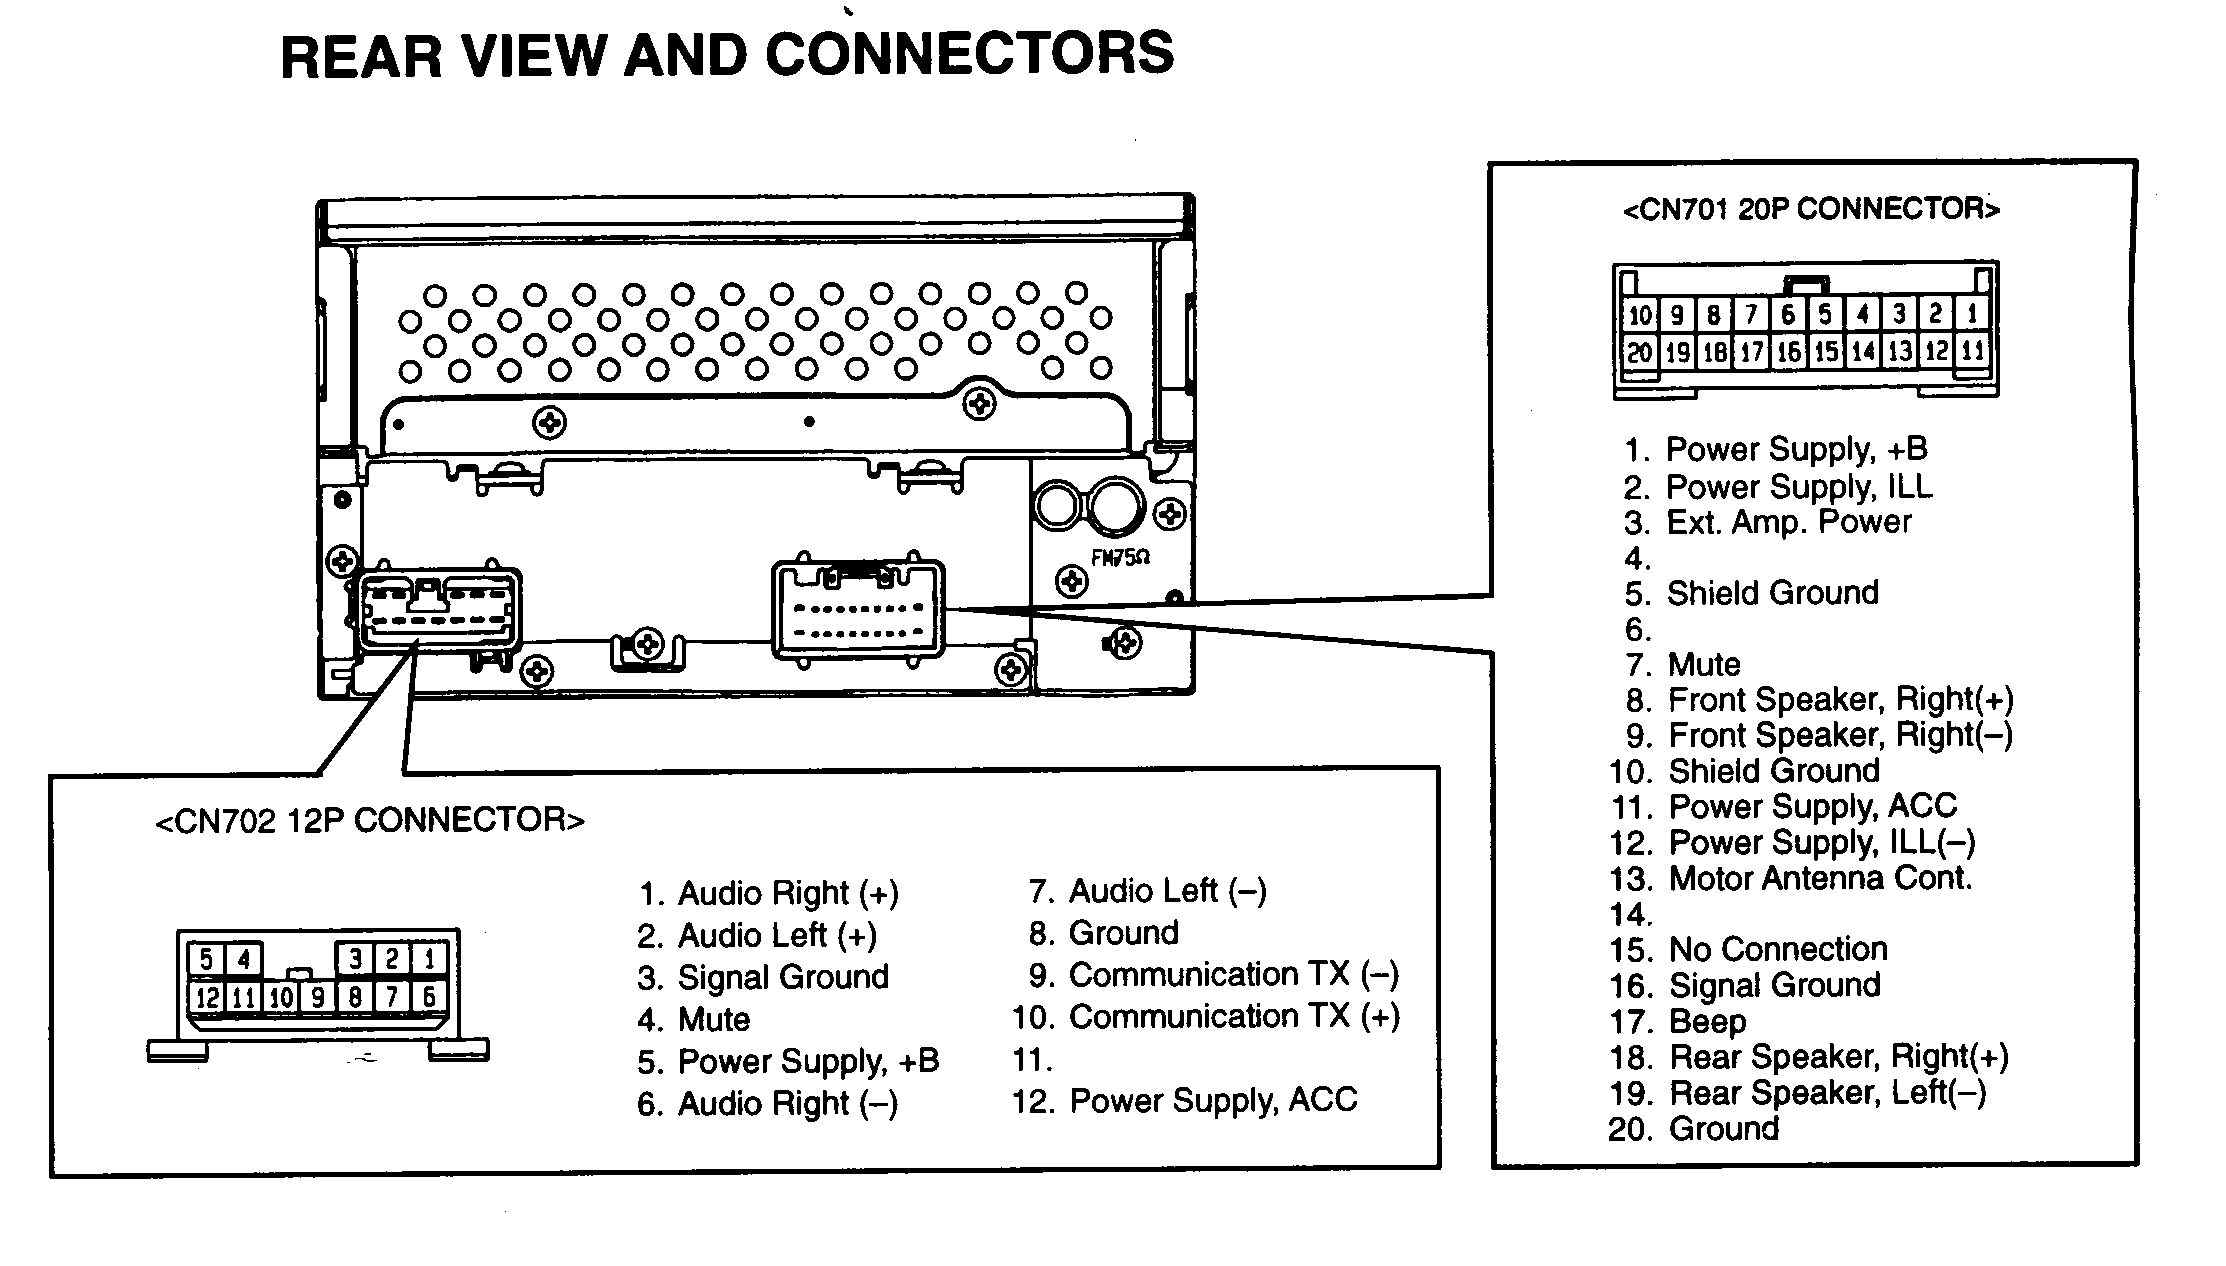 1996 Gmc Cd Radio Wiring Diagram Reinvent Your Ford Transmission Schematic Bose Car Stereo Diagrams Schematics Rh Caltech Ctp Com Automatic For 1997 Jimmy Brake Switch